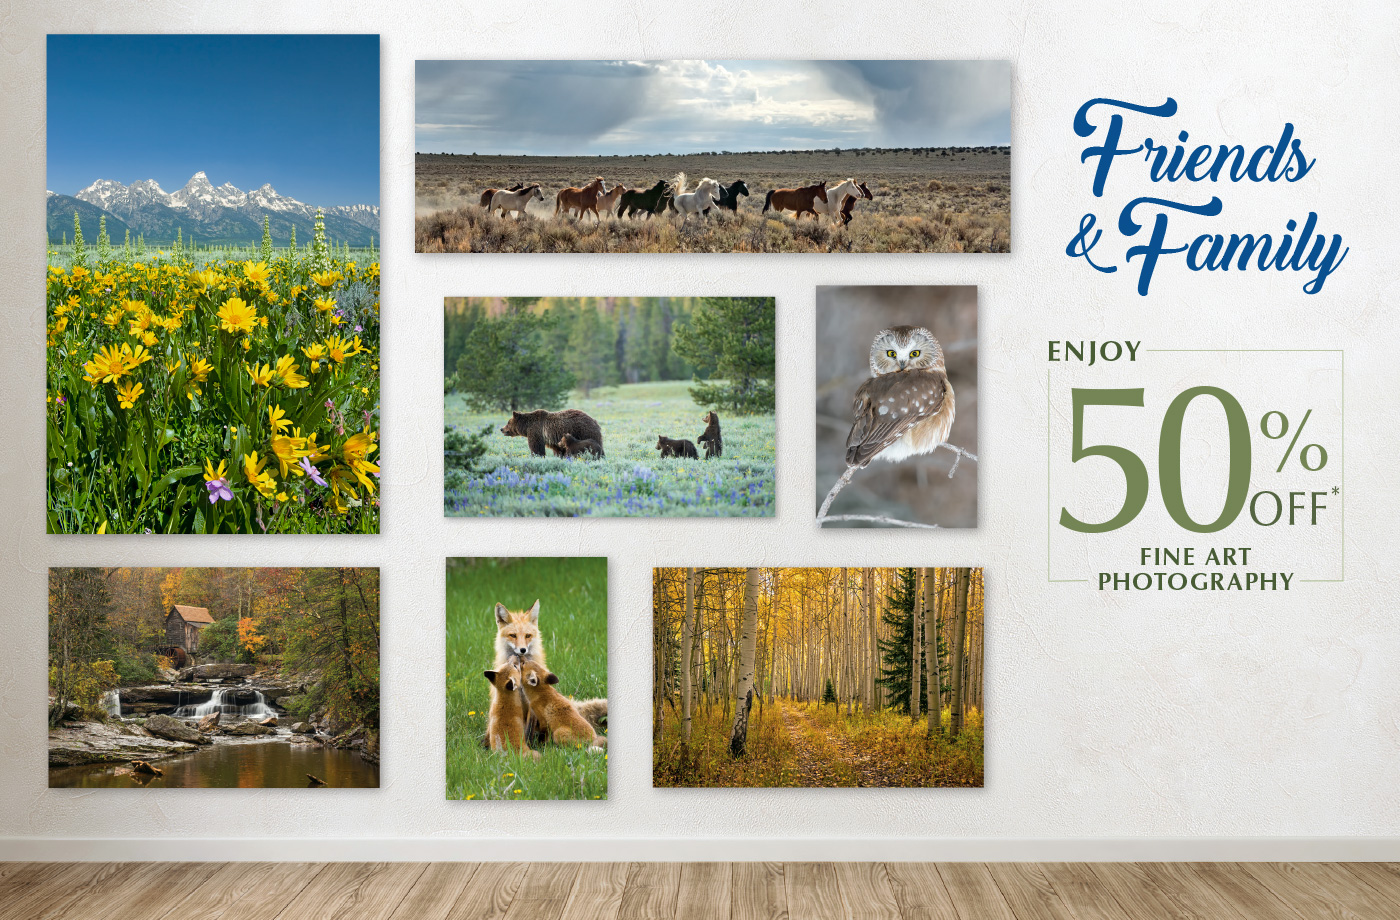 Enjoy 50% off fine art photography with Friends & Family